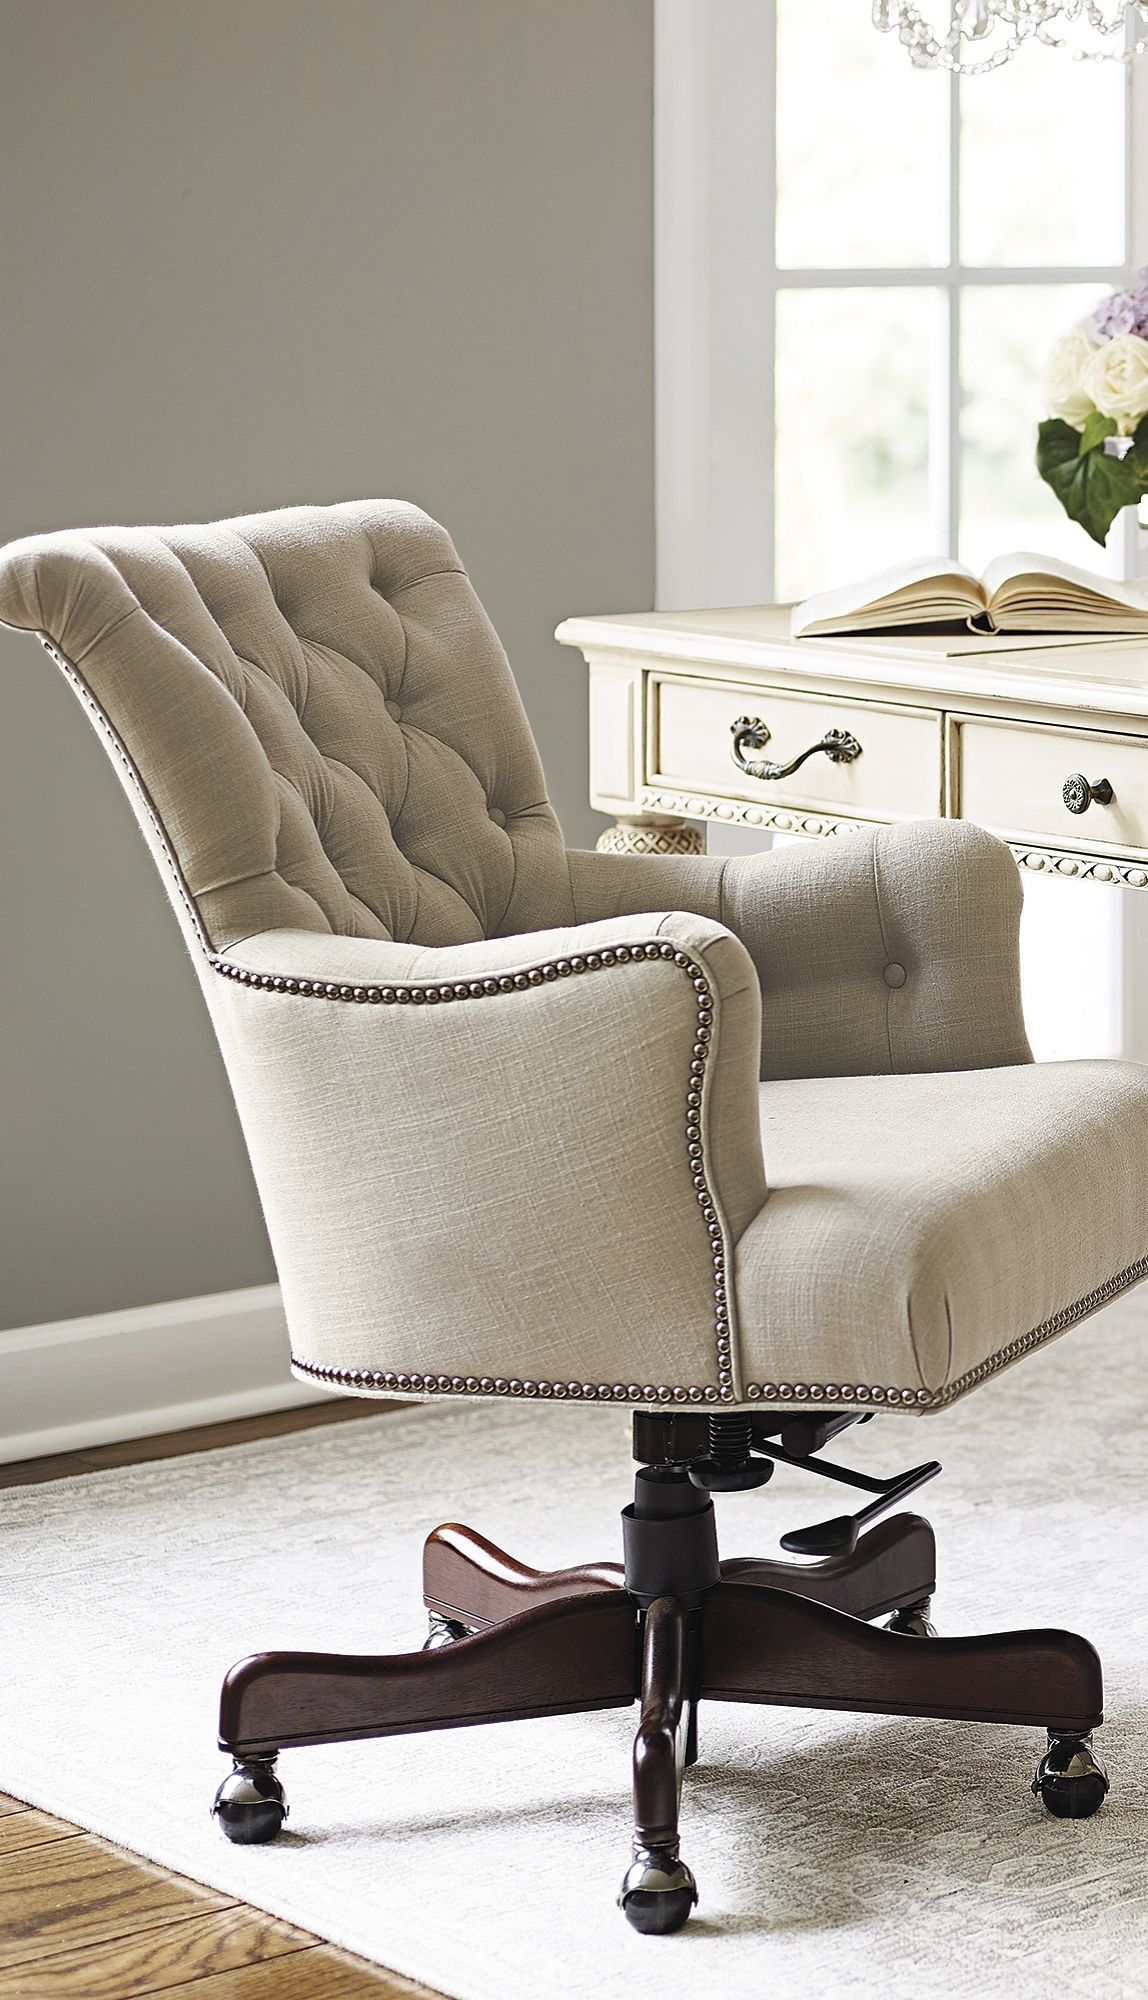 comfortable chair for office. Button-tufted Linen Accented With Silver Nailhead Trim Defines The Elegant Averly Desk Chair. Comfortable Chair For Office R